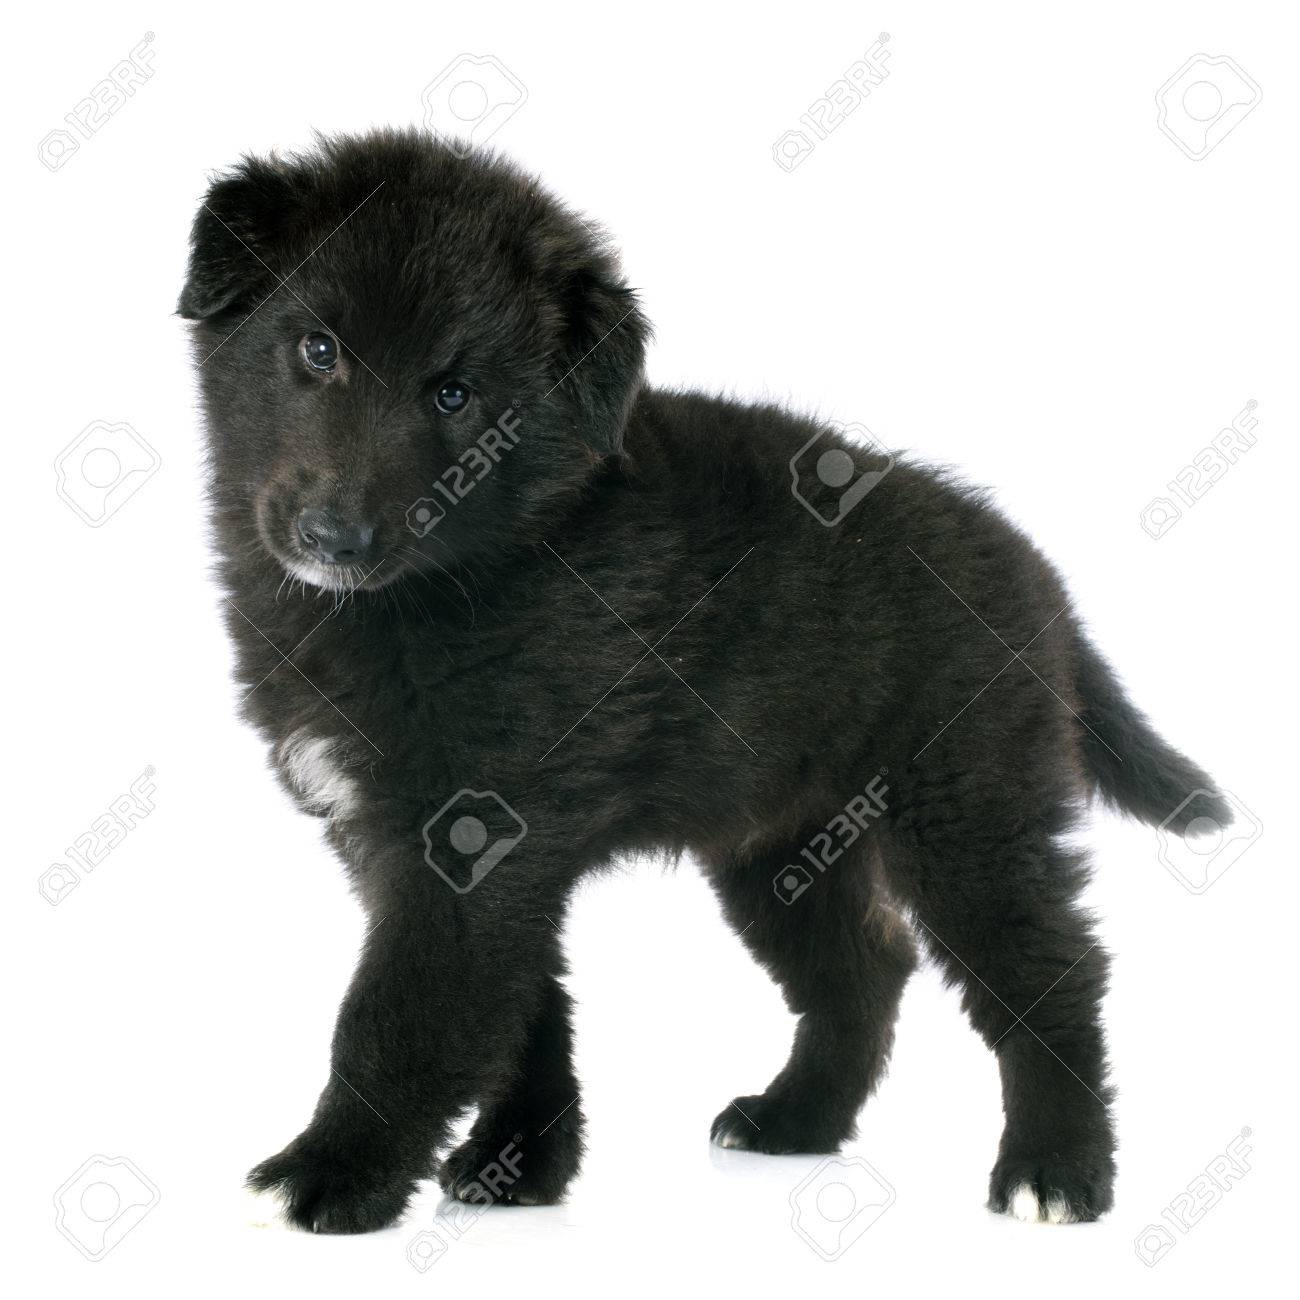 Picture Of A Puppy Belgian Sheepdog Groenendael Stock Photo Picture